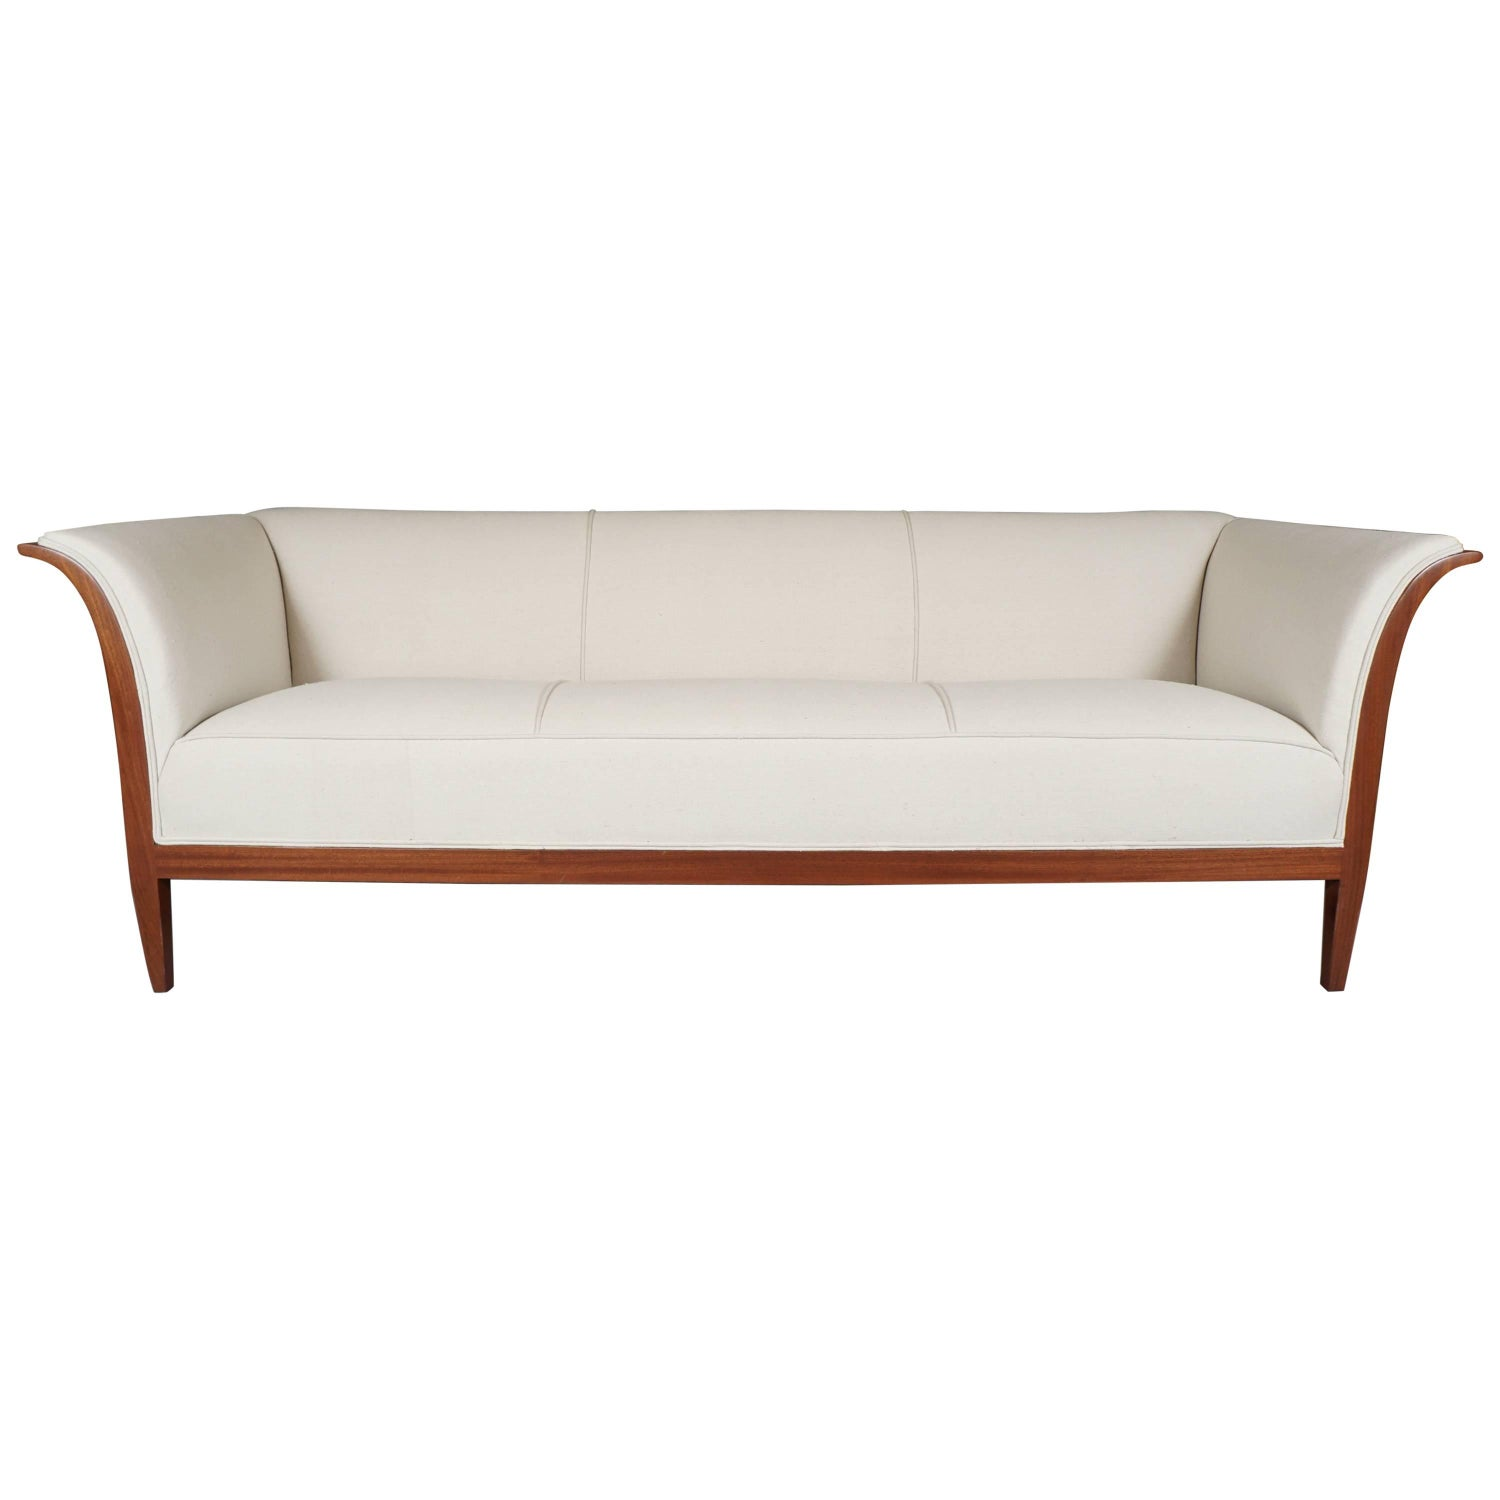 1940s Sofas 202 For Sale at 1stdibs